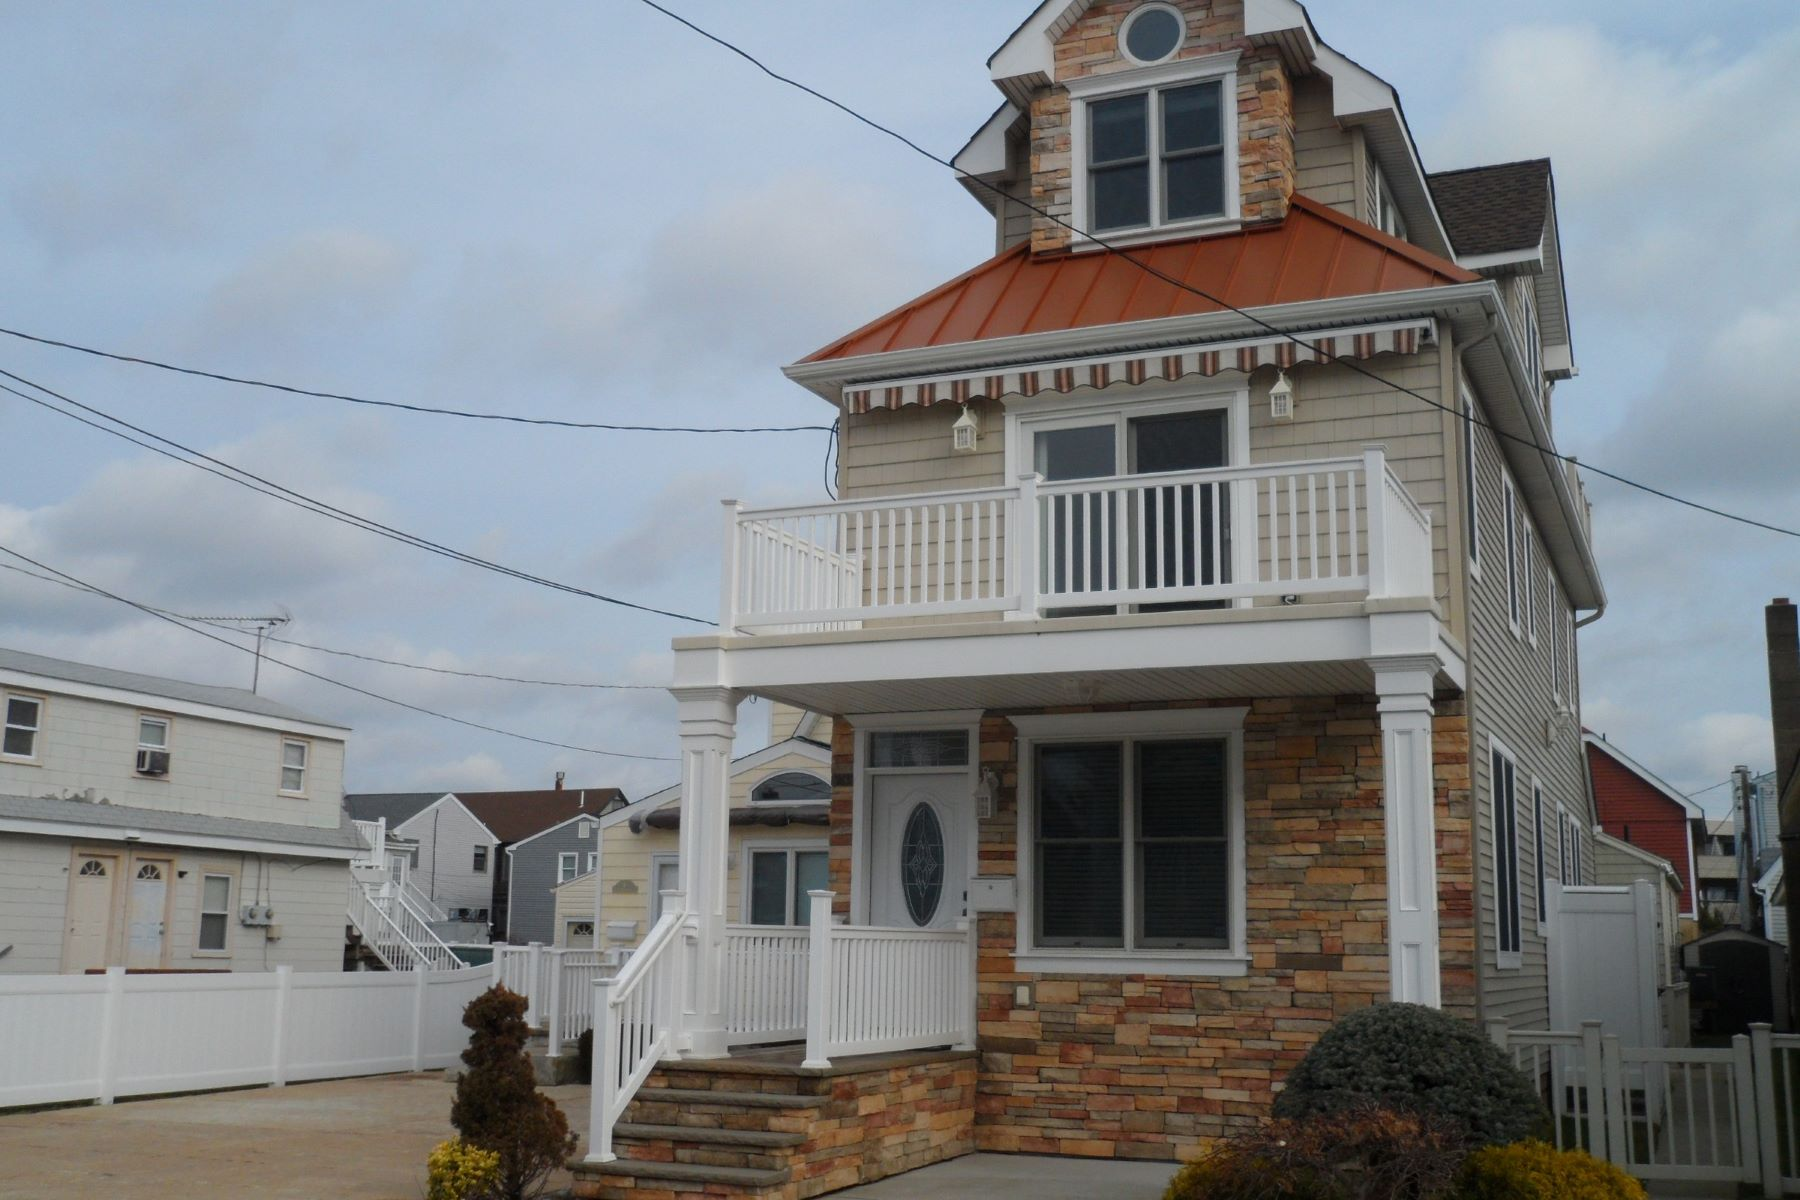 Single Family Homes for Rent at 11 S Jefferson Ave Bay District Main House, Margate, New Jersey 08402 United States